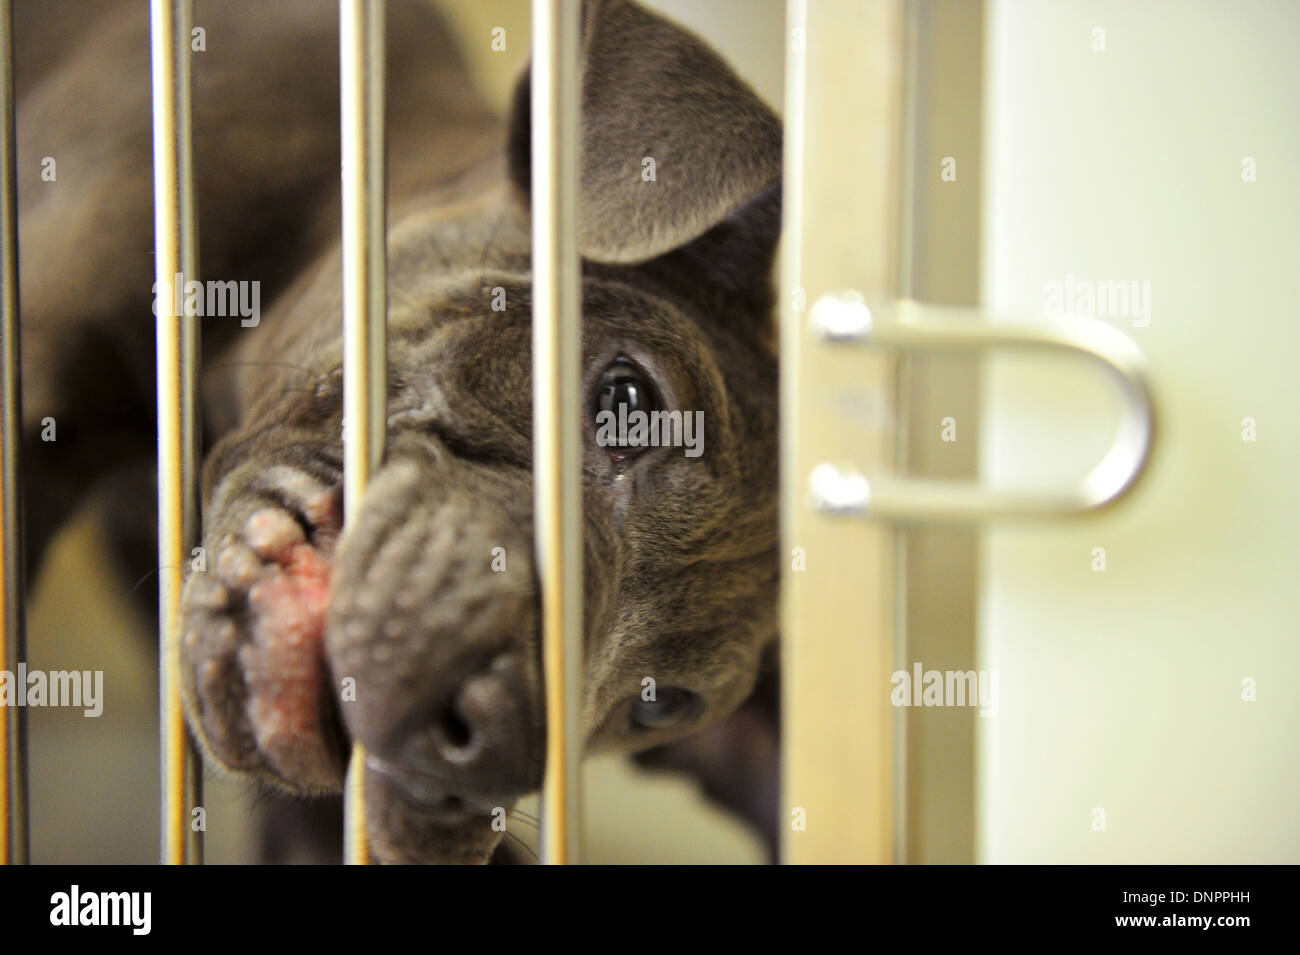 A puppy biting its cage in Cardiff Dogs Home, which sees an increase in intake after the Christmas period. - Stock Image